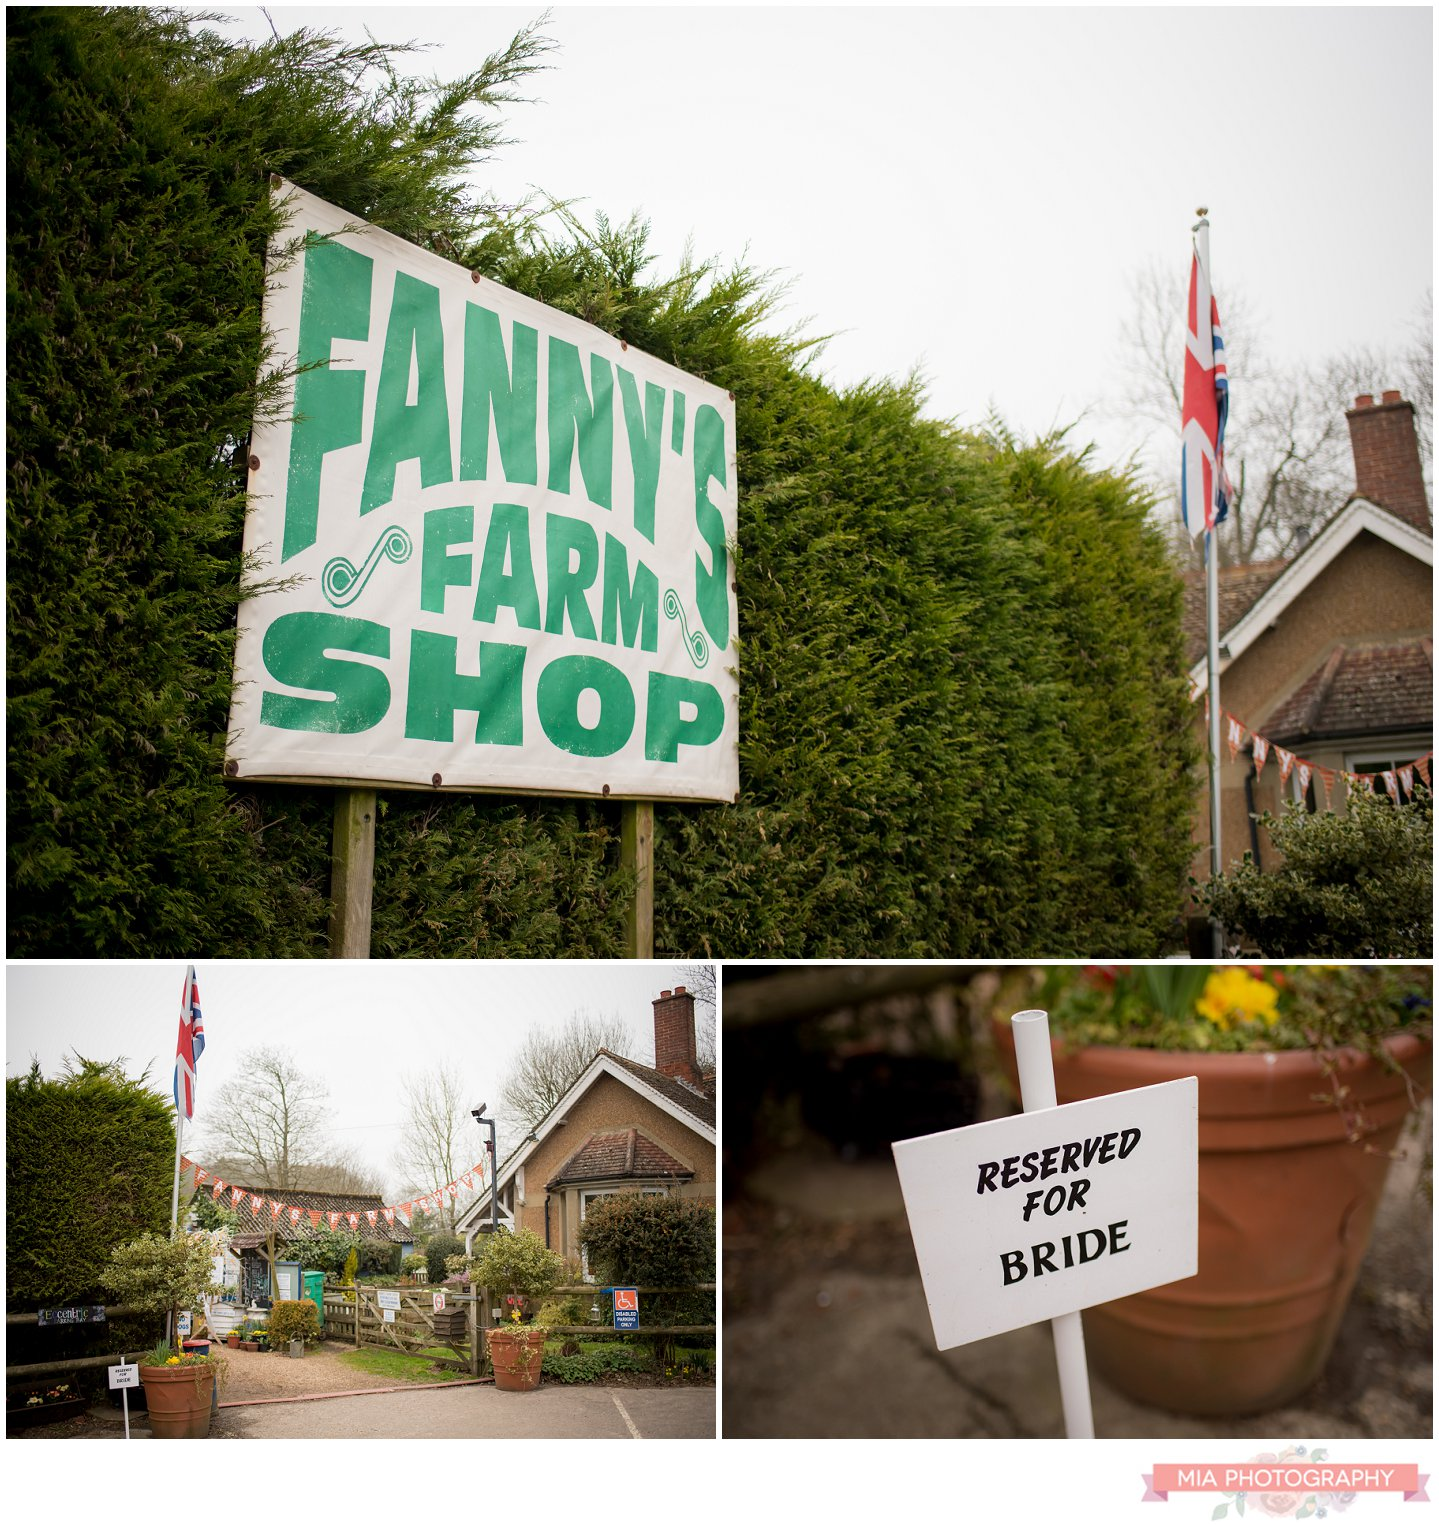 Fanny's Farm shop sign